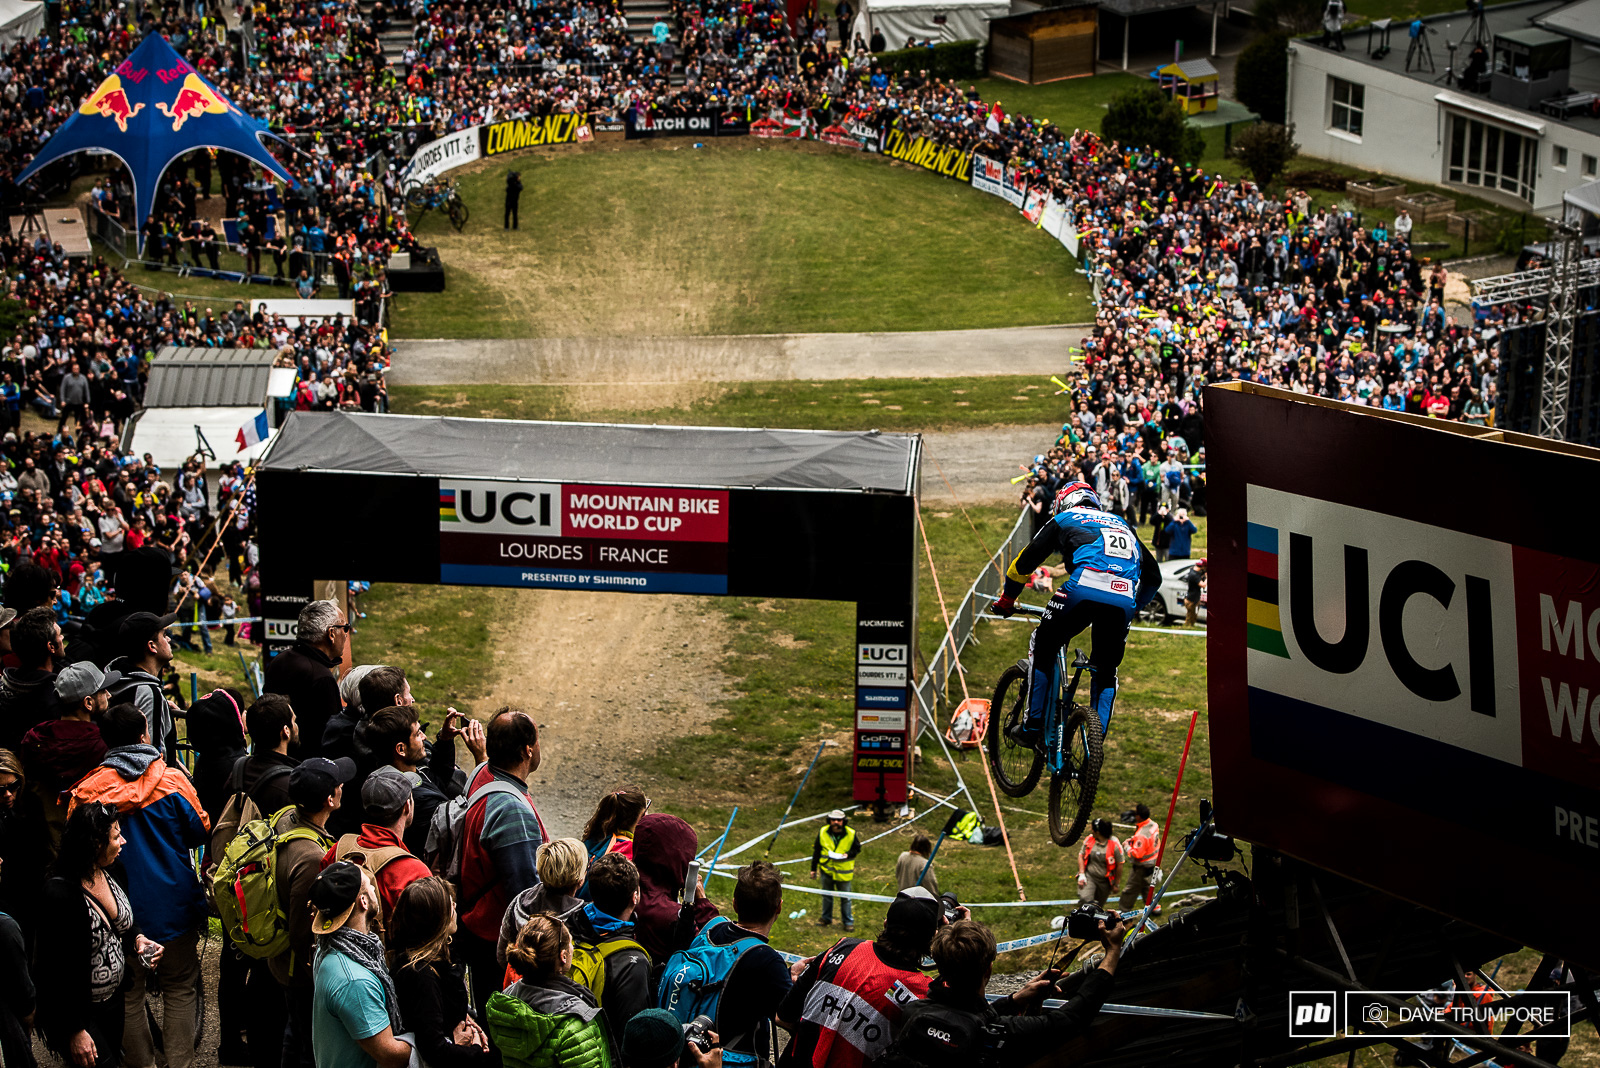 3rd place for Marcello after a lot of hard work and a little bit of luck here in Lourdes.